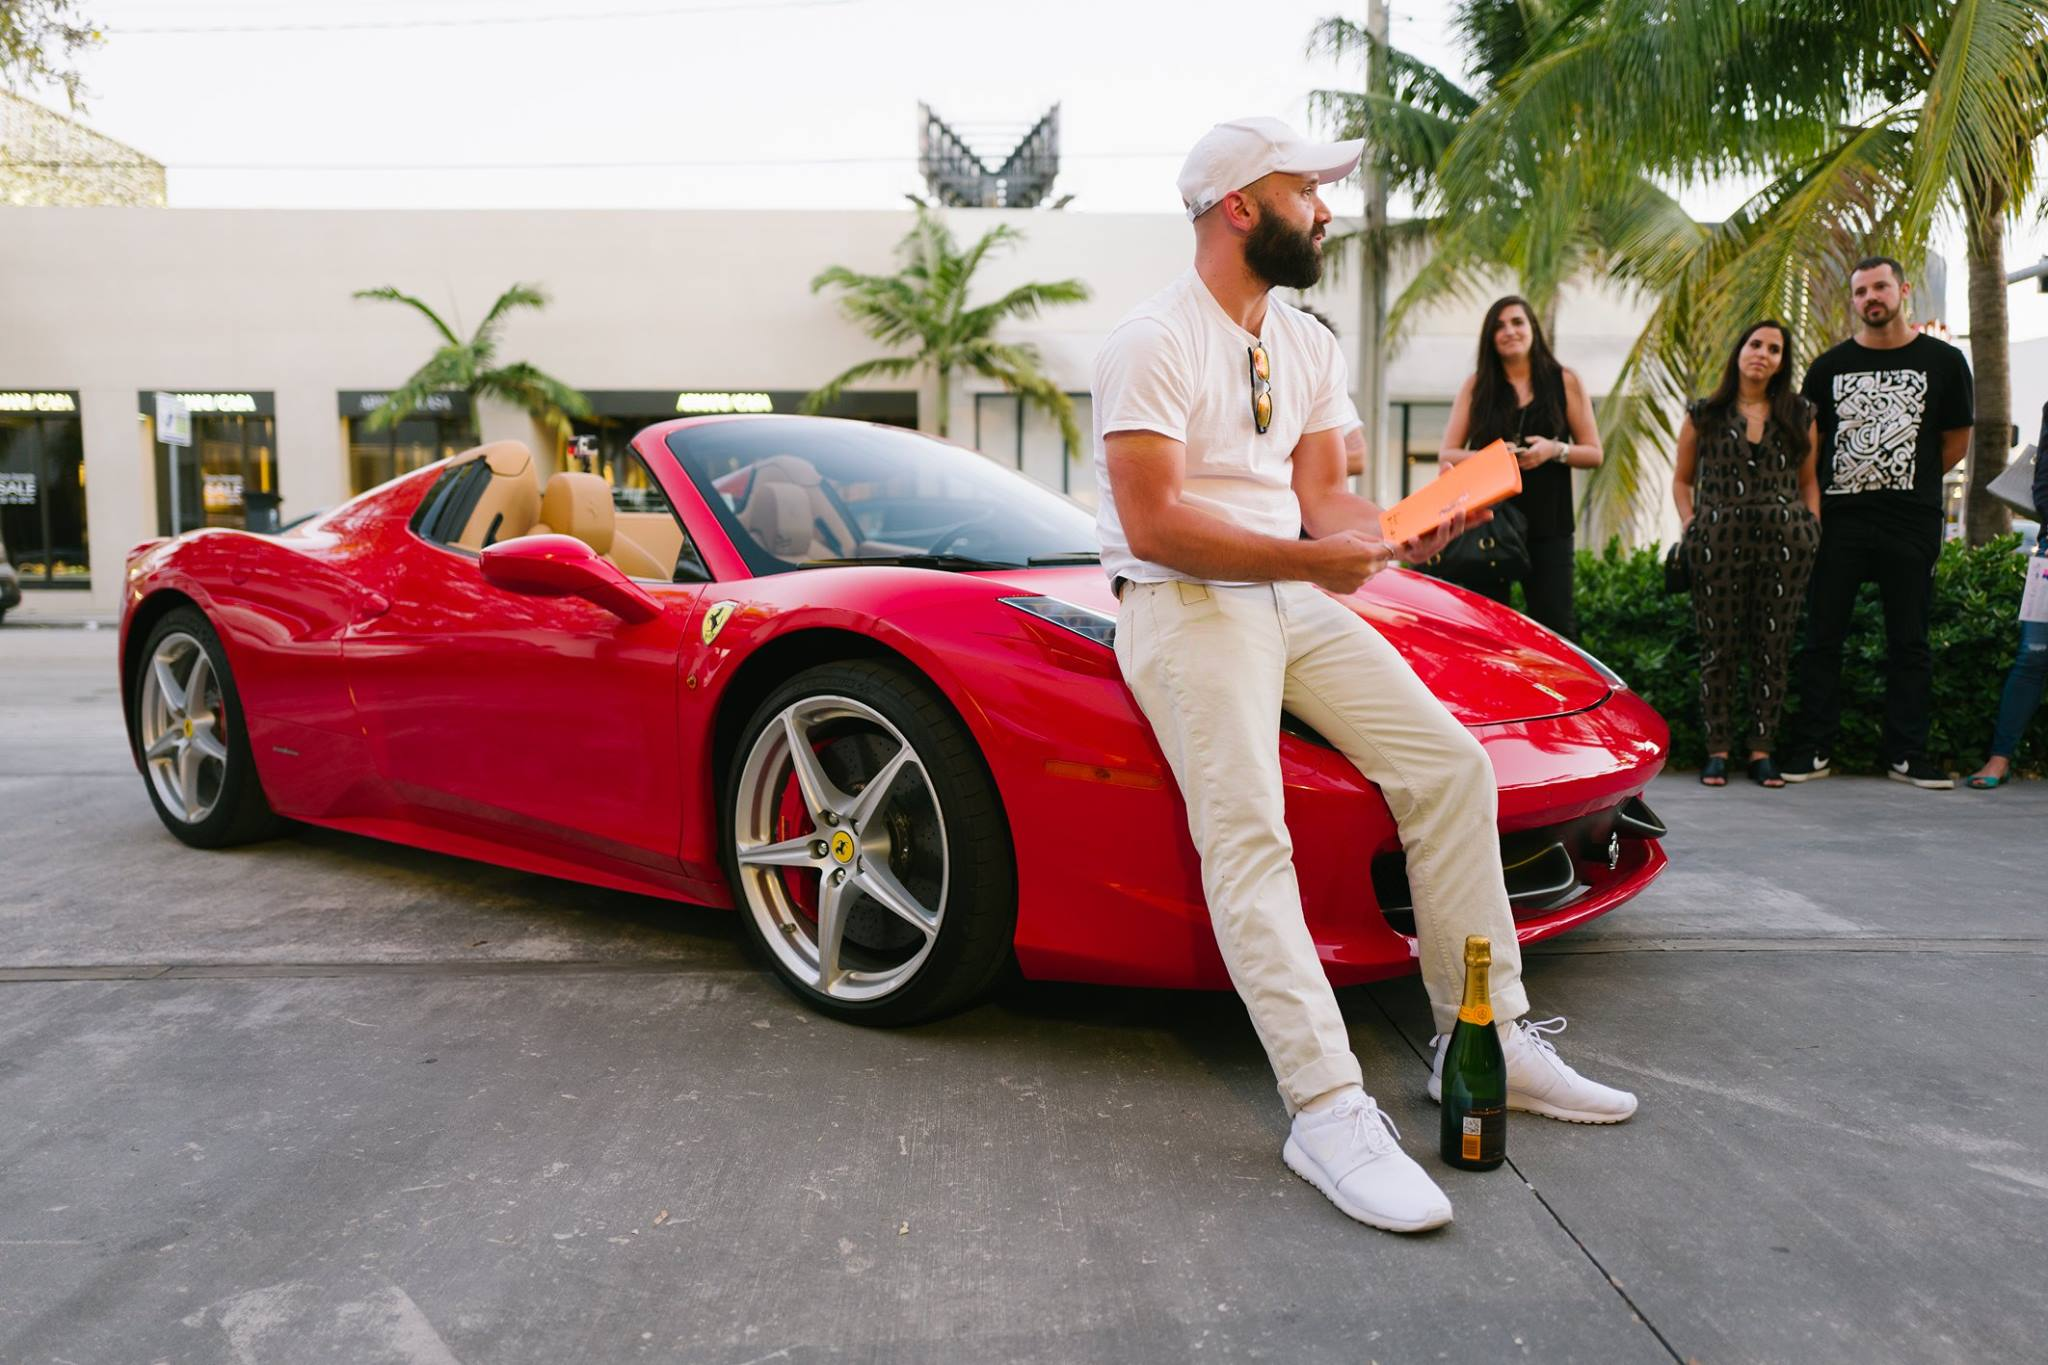 Ferrari 458 Spider with Nike Roshe 1 & Veuve Clicqout Brut -  Primary Projects - Miami, FL.  Photo -  Gesi Schilling